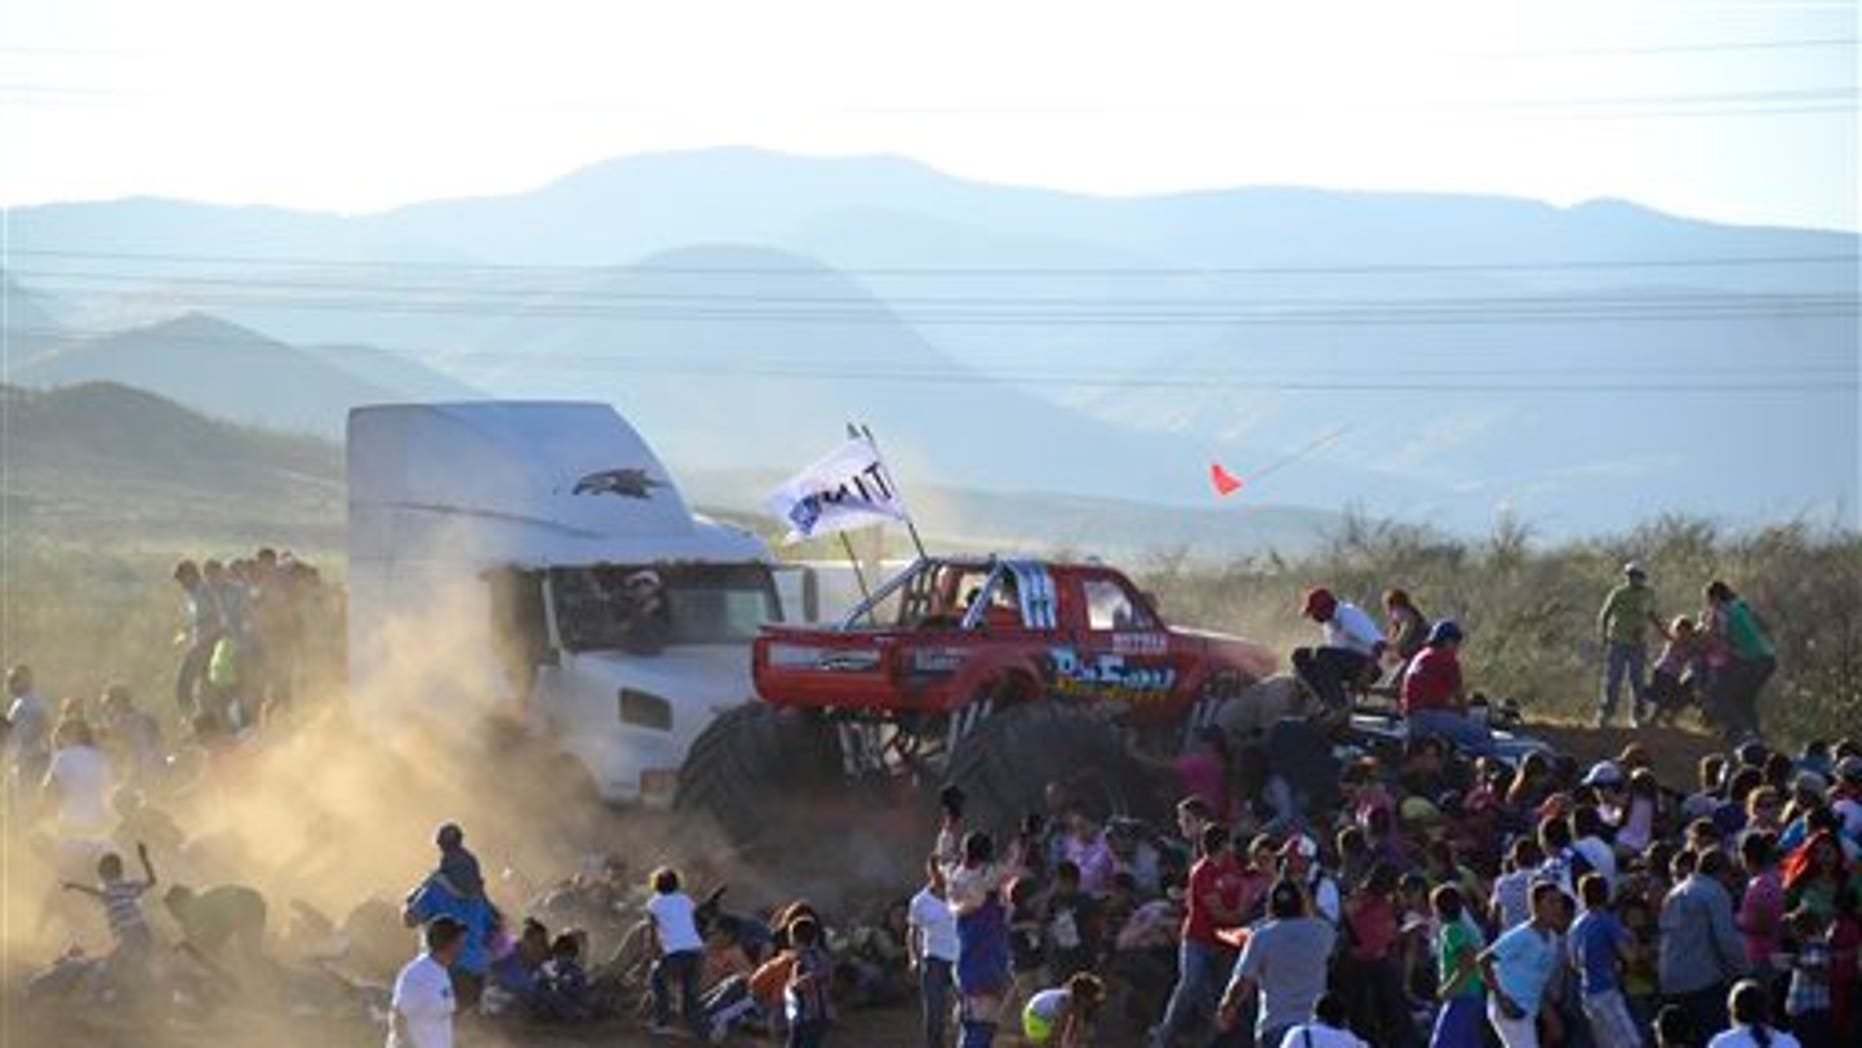 People run as an out of control monster truck plows through a crowd of spectators in the city of Chihuahua, Mexico, Saturday Oct. 5, 2013.